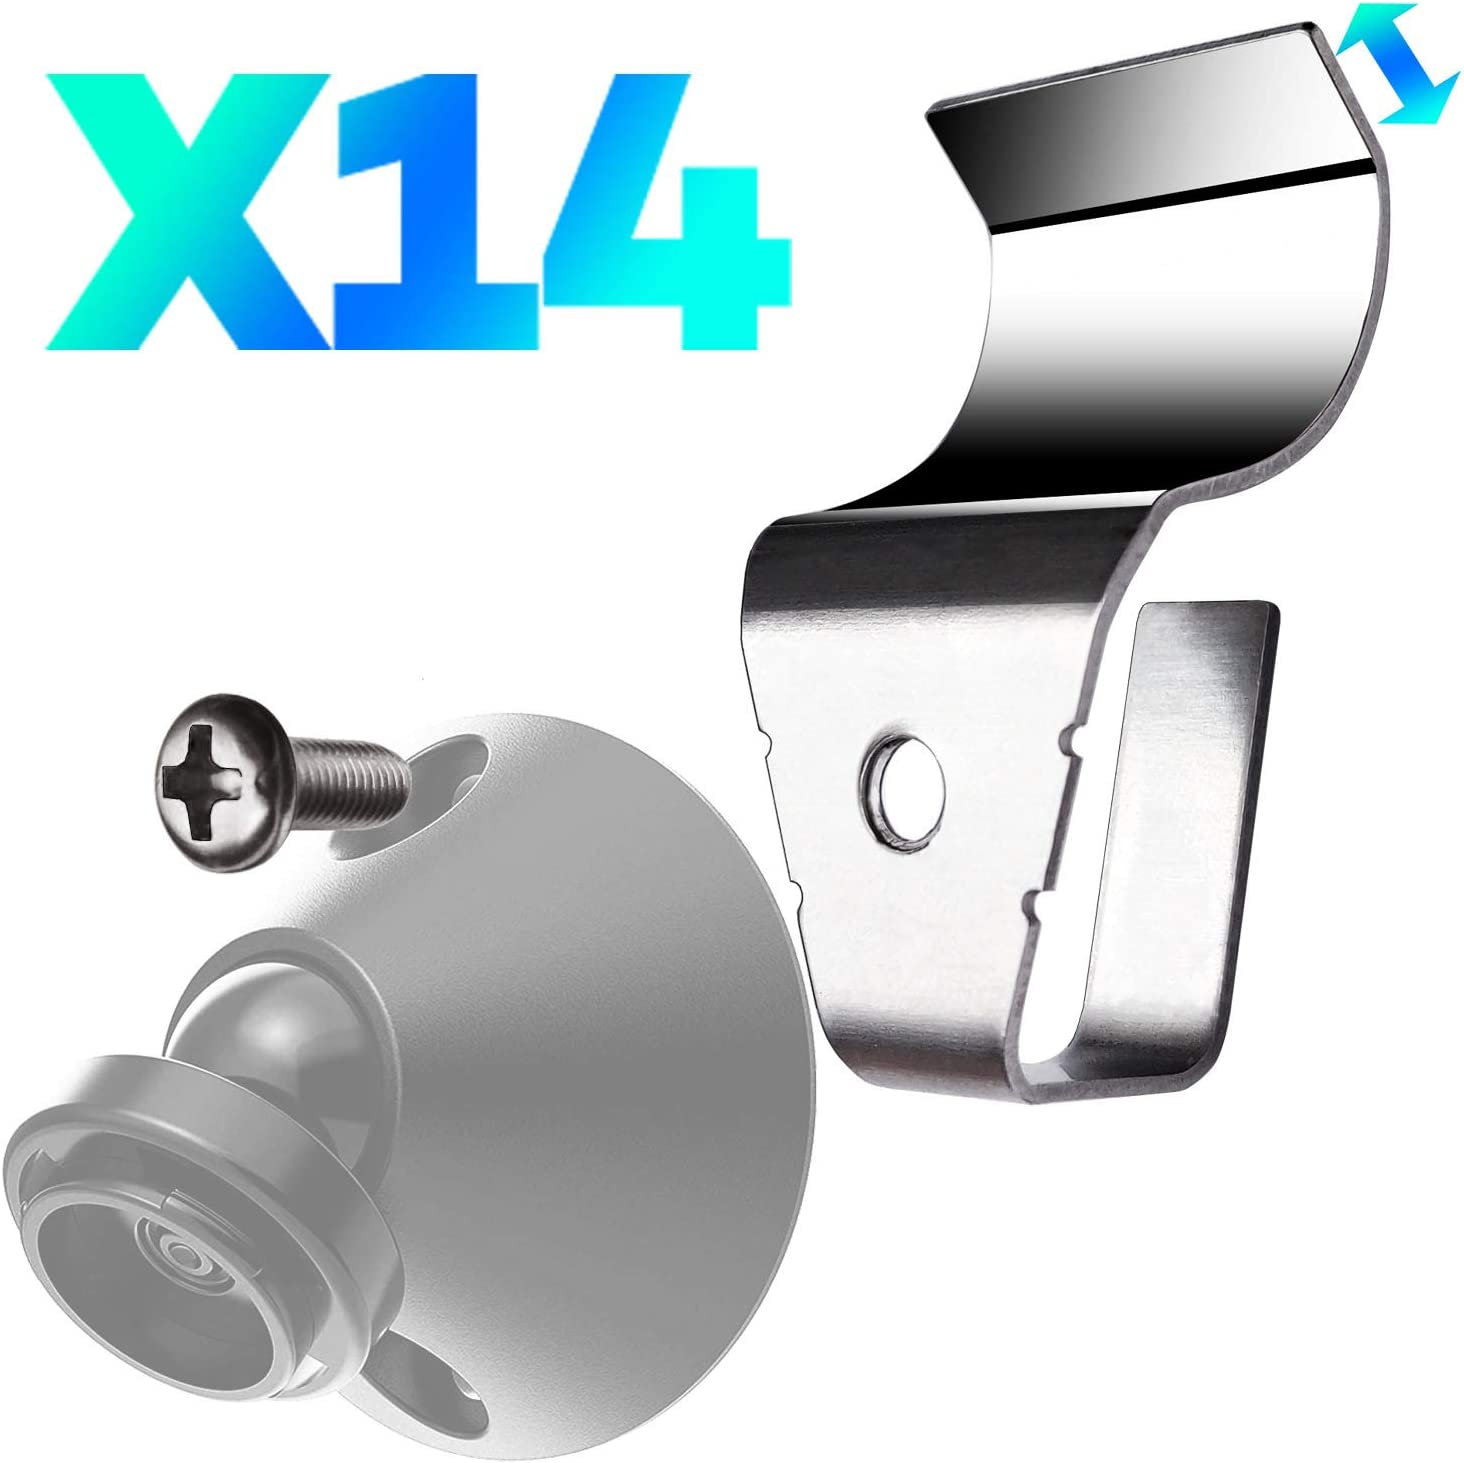 Upgraded 2.0 14 Pack Vinyl Siding Clips Hooks No-Hole Needed for Blink XT2 Wyze Cam Pan Arlo Ring Cam Mount Home Security Camera